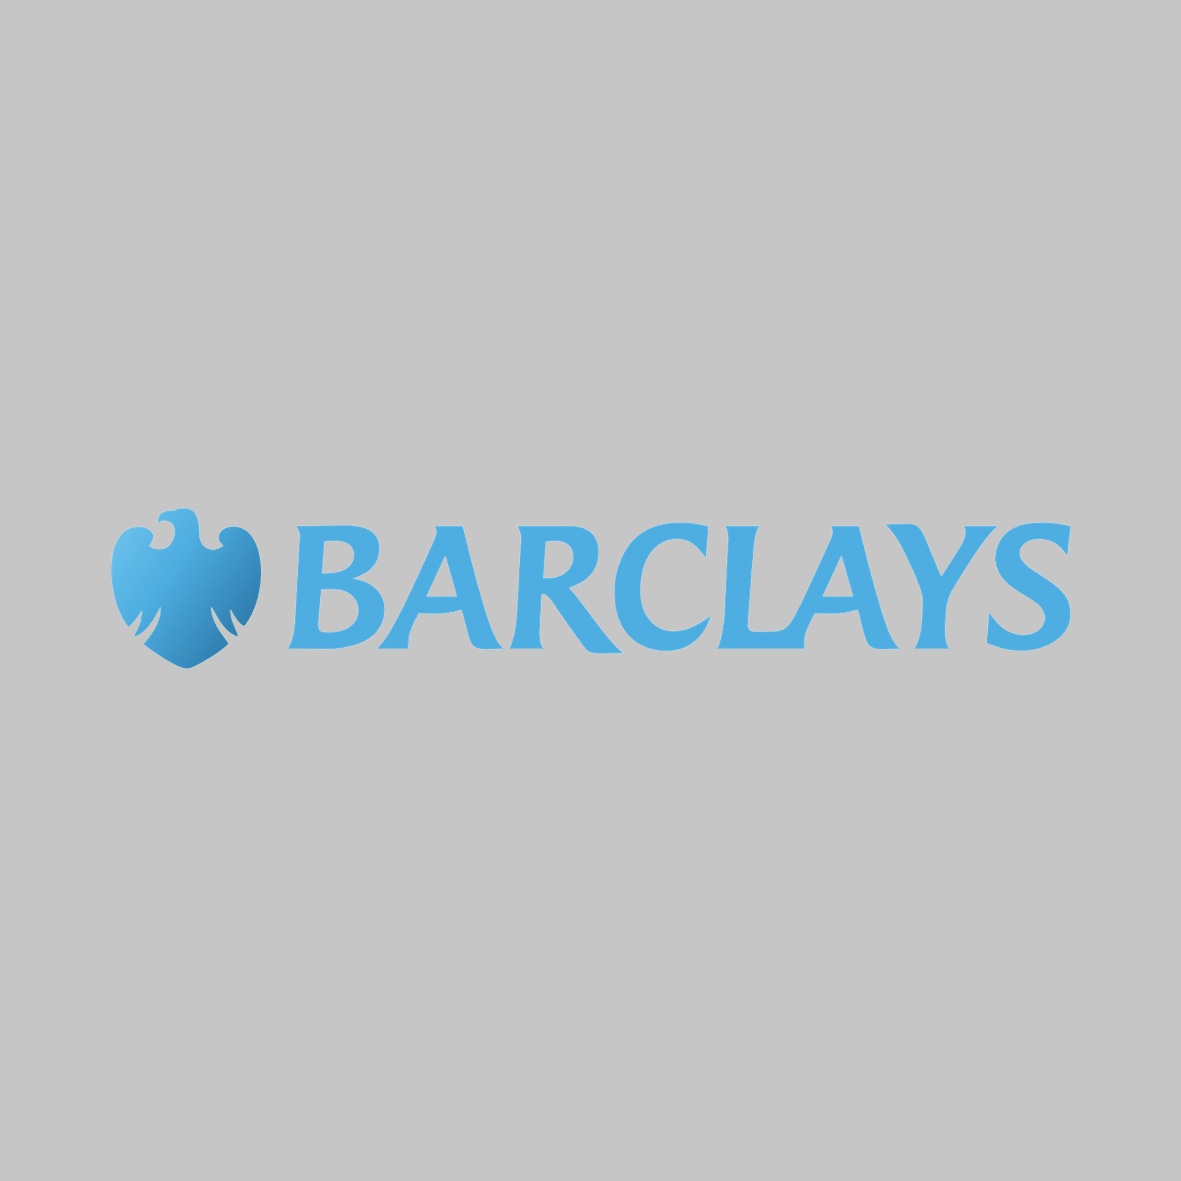 Barclays  The Private Bank focuses on bespoke solutions ranging from standard to sophisticated for their HNW, UHNW and Family Office clients. Private Bankers curate a dedicated team for each client, bringing together banking, credit, investment, philanthropy and wealth planning specialists from across Barclays. The Overseas Services division of Barclays offers banking, investment and credit products and services to local residents and businesses based in Jersey, Guernsey and Isle of Man. It also serves non-UK-based corporates and fiduciaries who have UK banking, credit and investment requirements. International Banking delivers banking, savings, mortgages and investment products to affluent international customers.    https://privatebank.barclays.com/